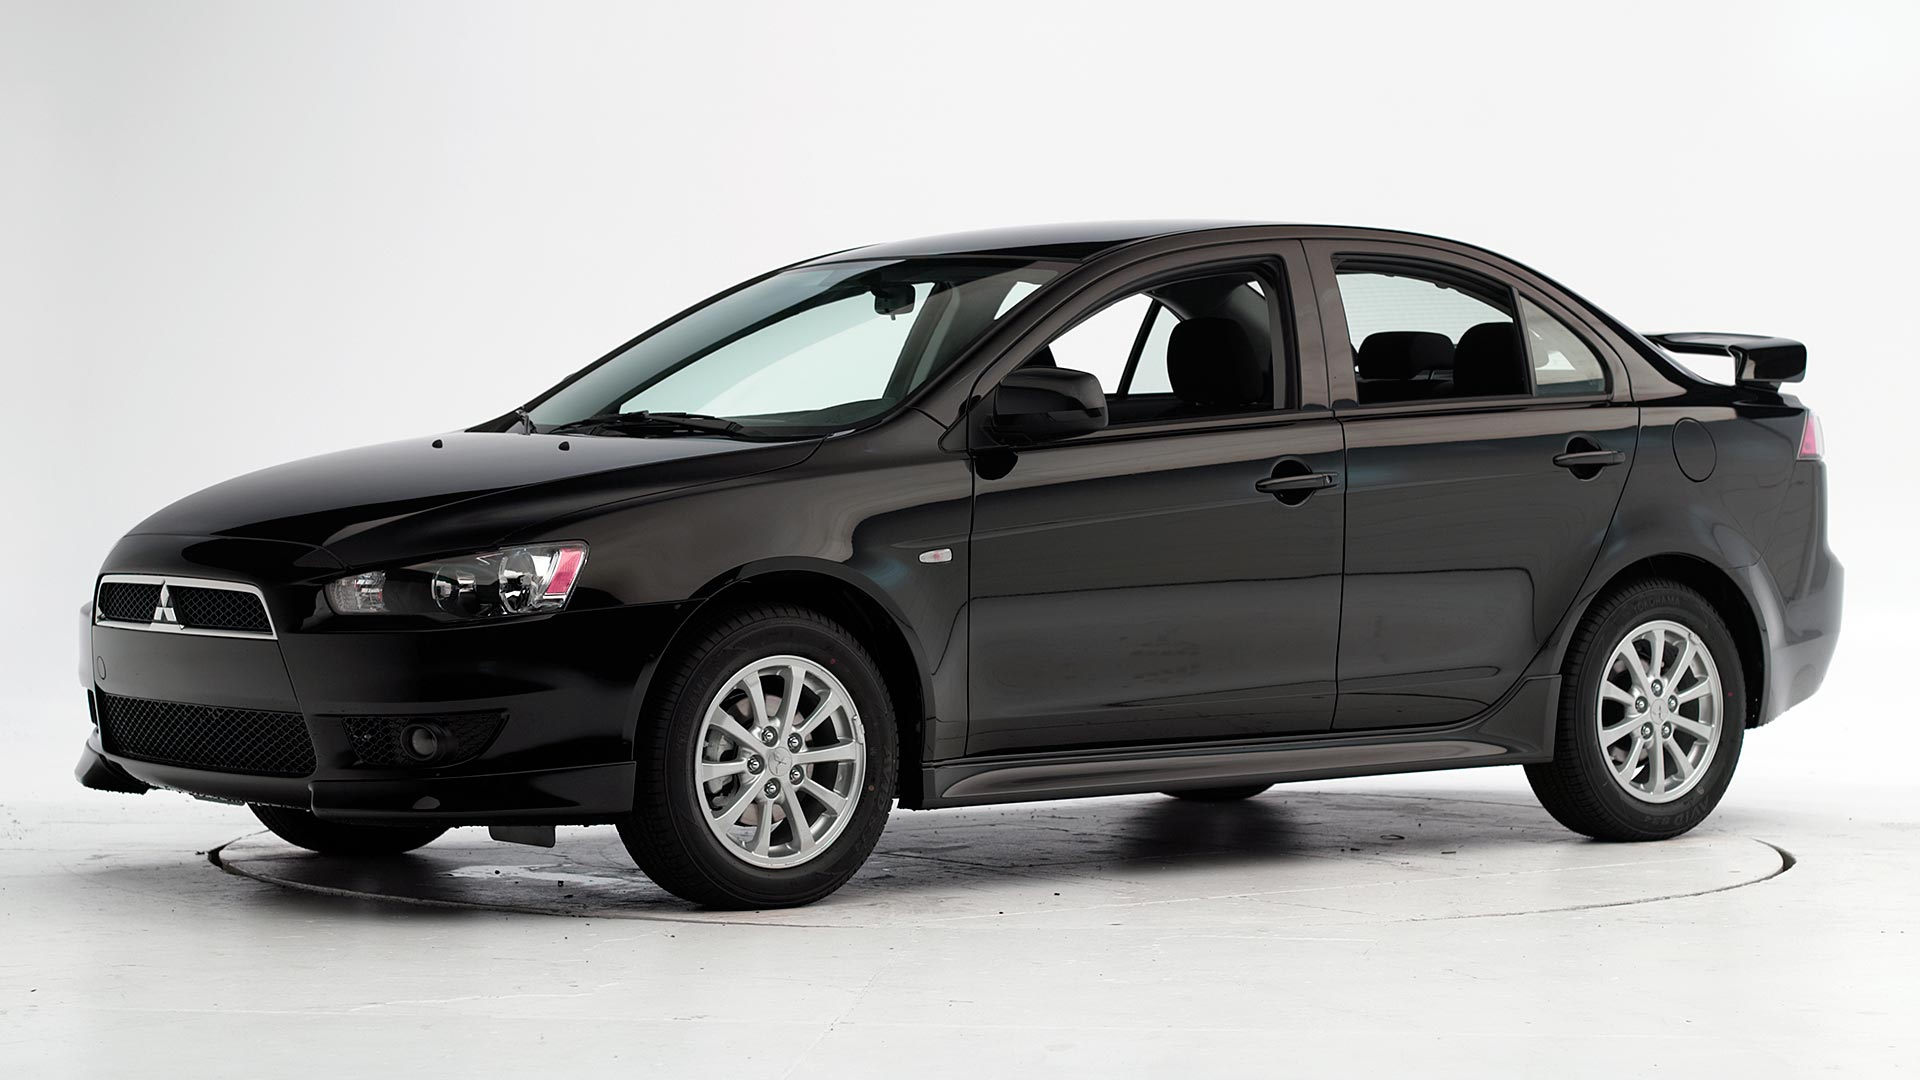 2010 Mitsubishi Lancer 4-door sedan